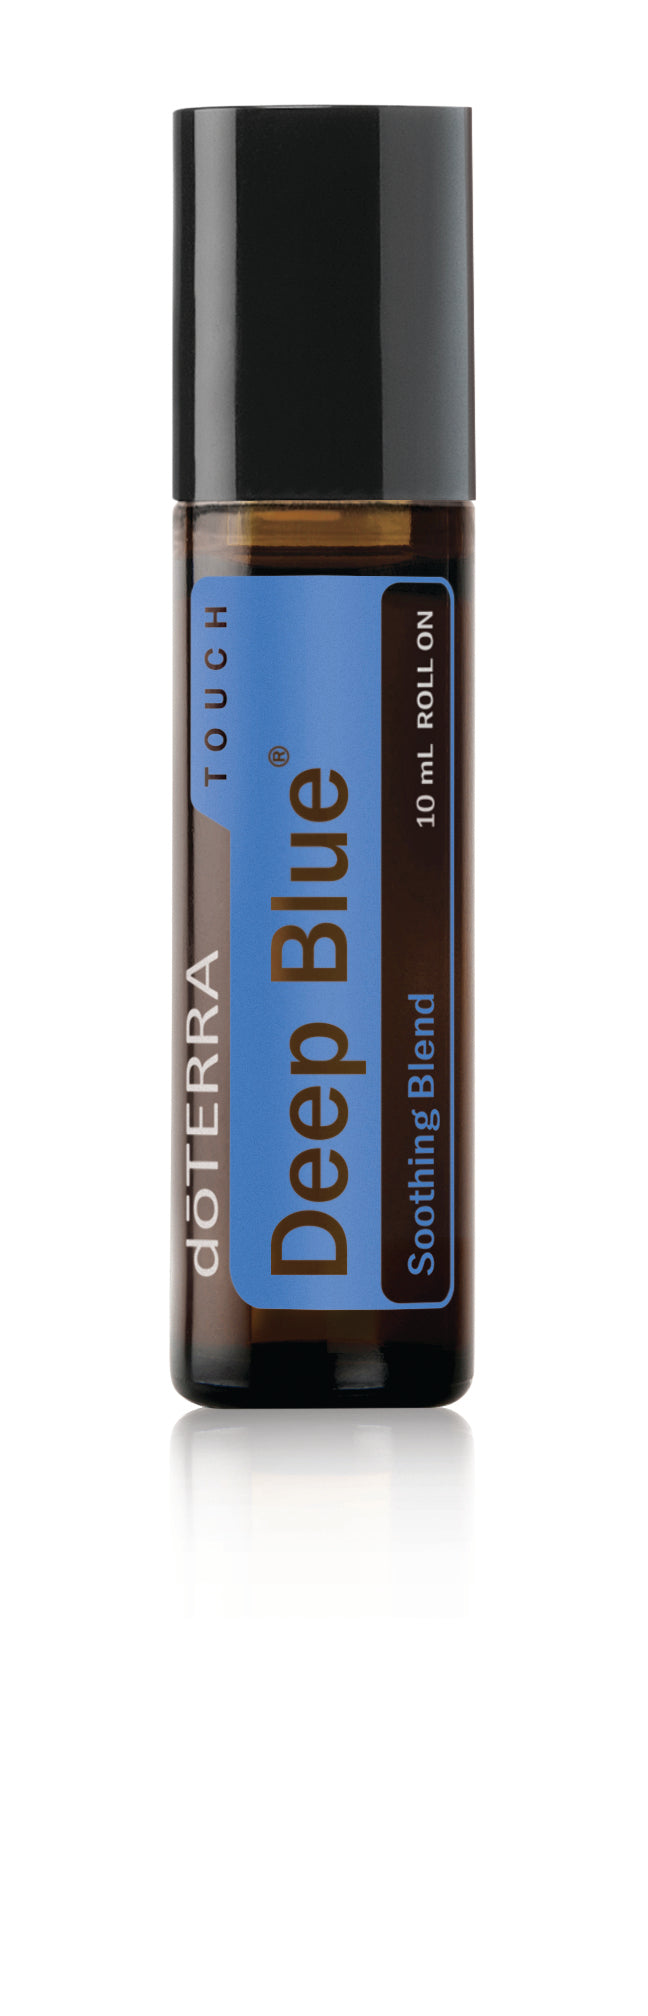 doTERRA Deep Blue Touch Oil - Purity of Earth